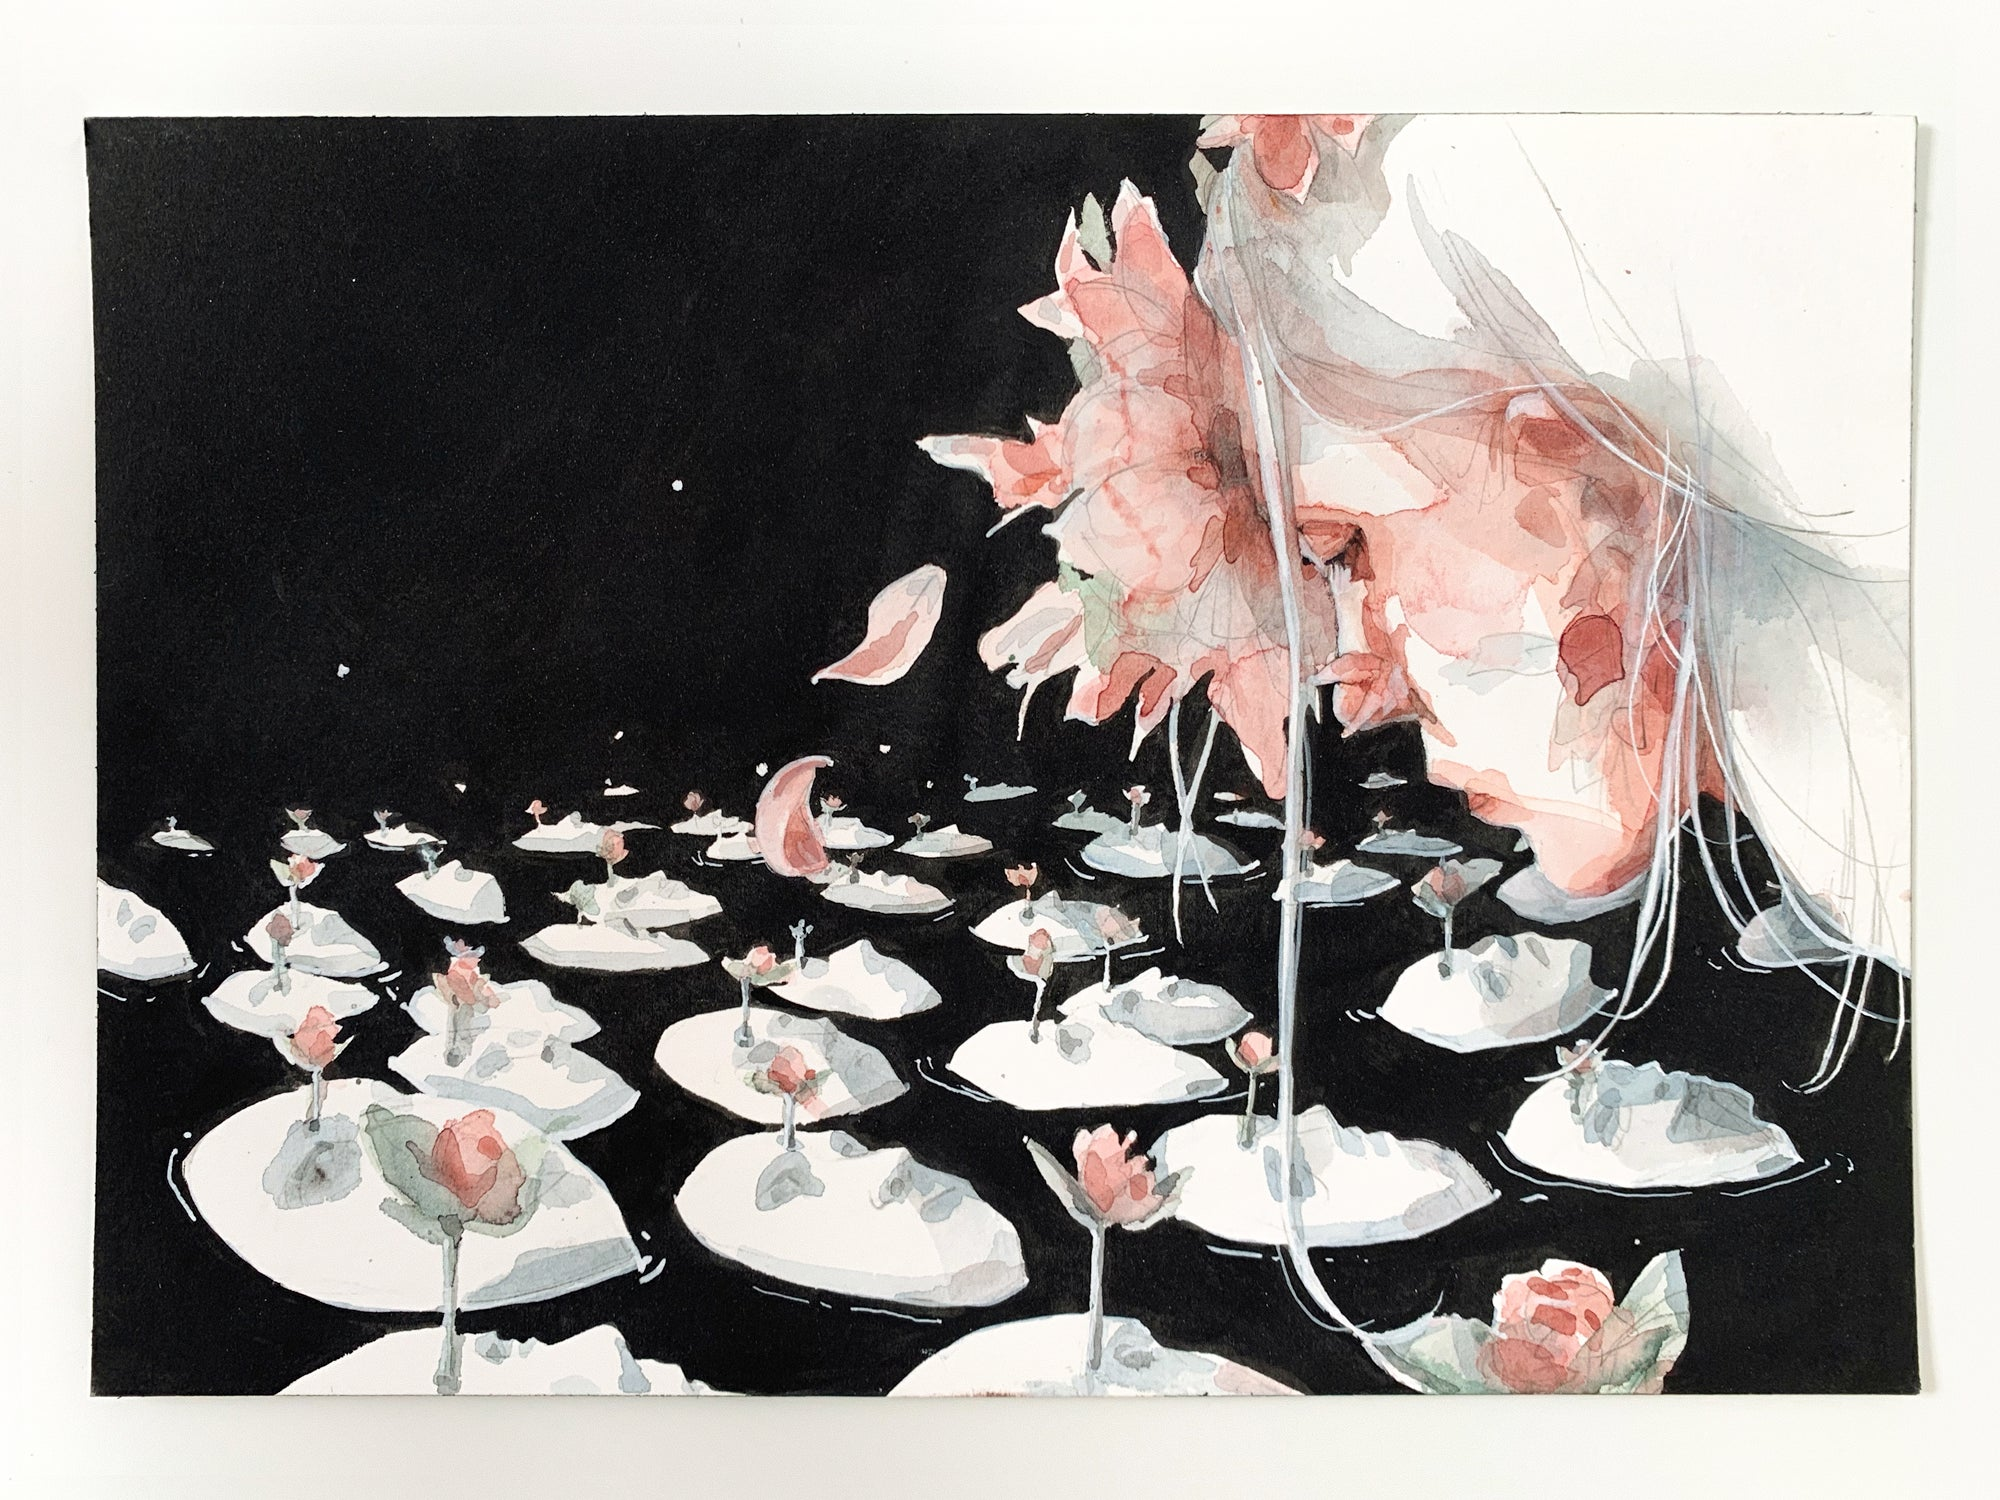 Agnes-Cecile the lives of the others